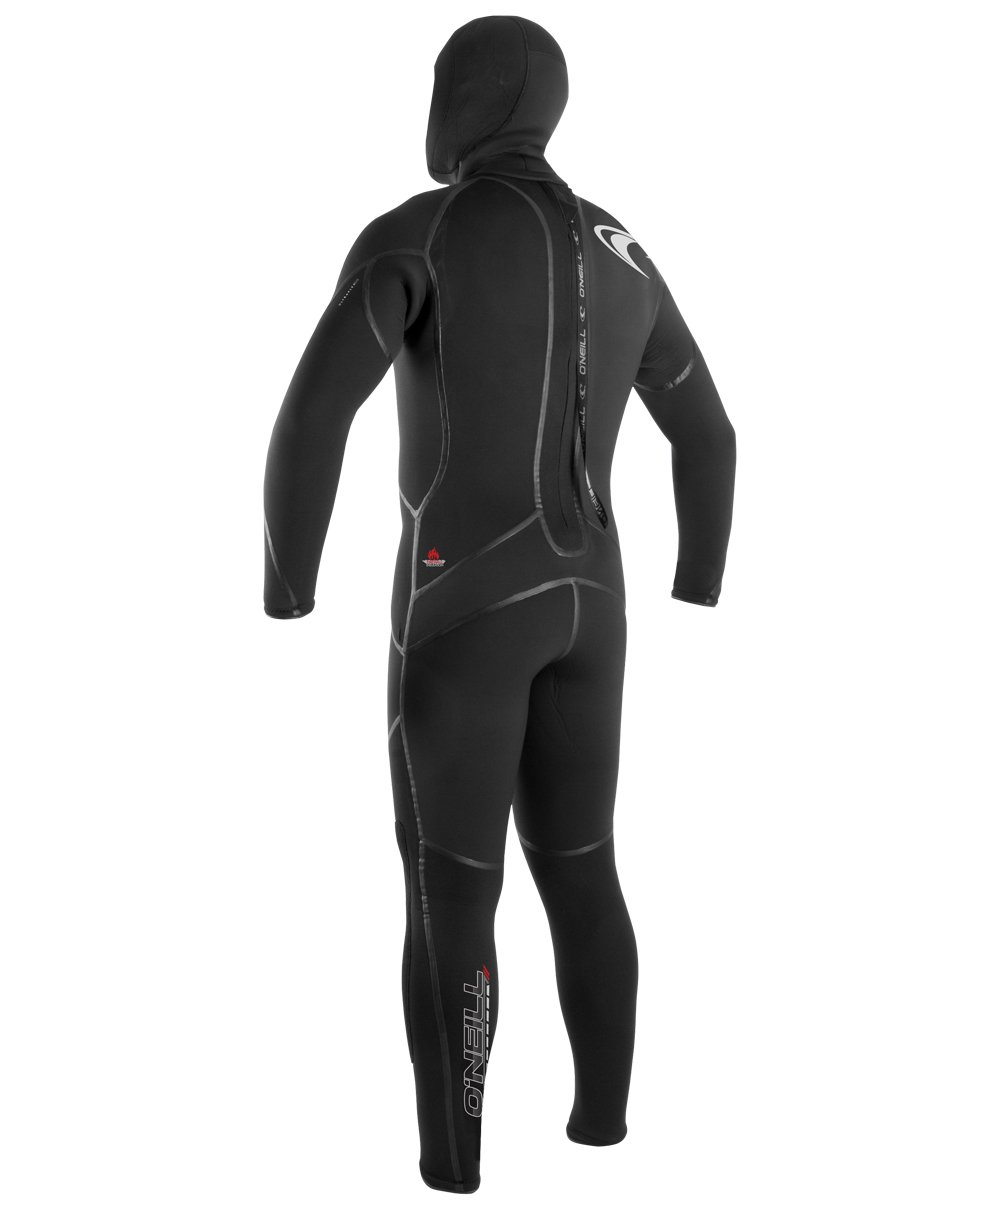 O'Neill Men's Dive J-Type 7mm Back Zip Full Wetsuit with Hood, Black, Large Short by O'Neill Wetsuits (Image #2)